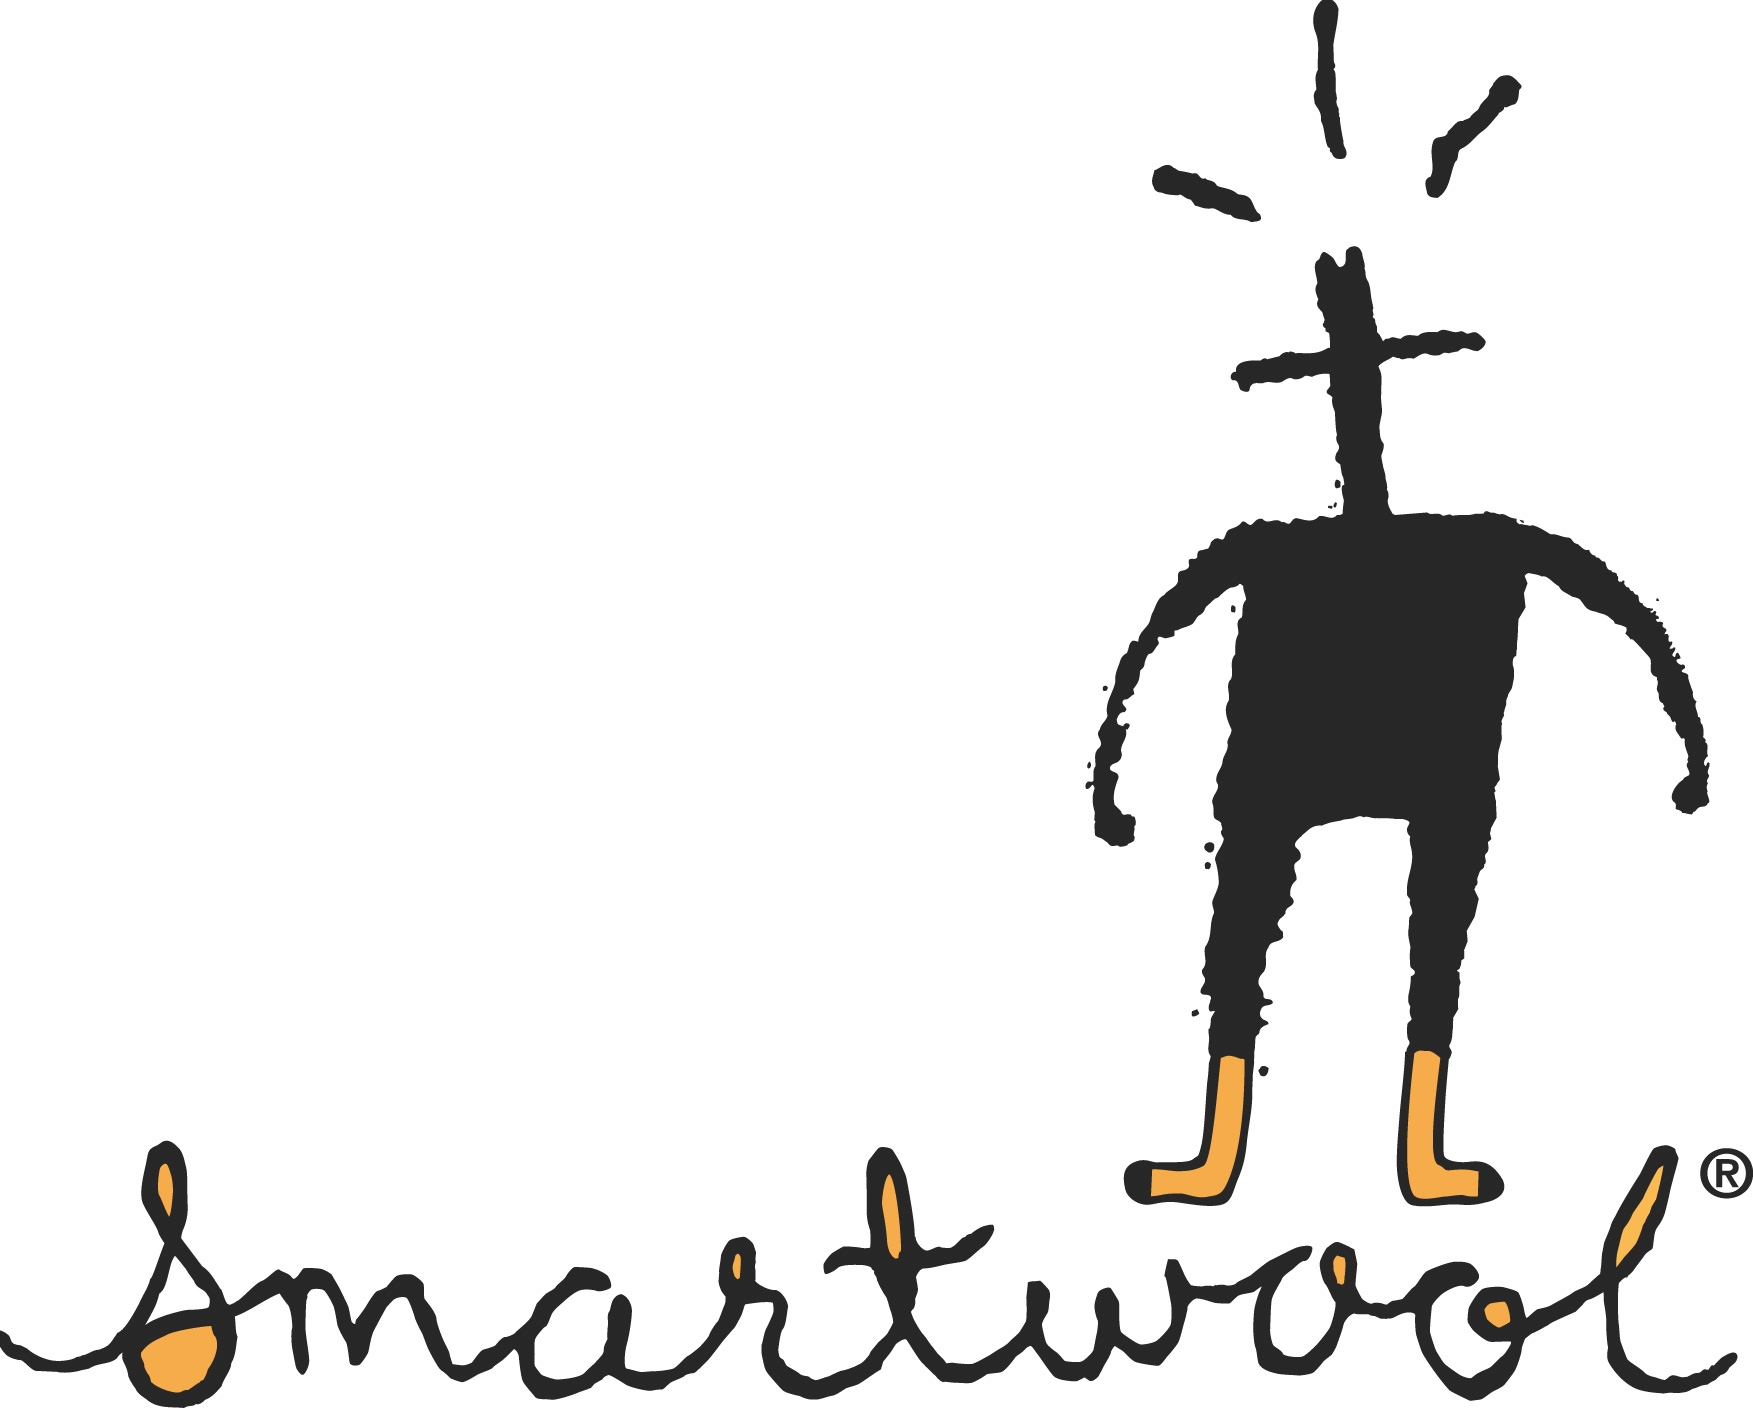 SmartWool Mobile Campaign Sees 1,313% Rise in Daily Likes